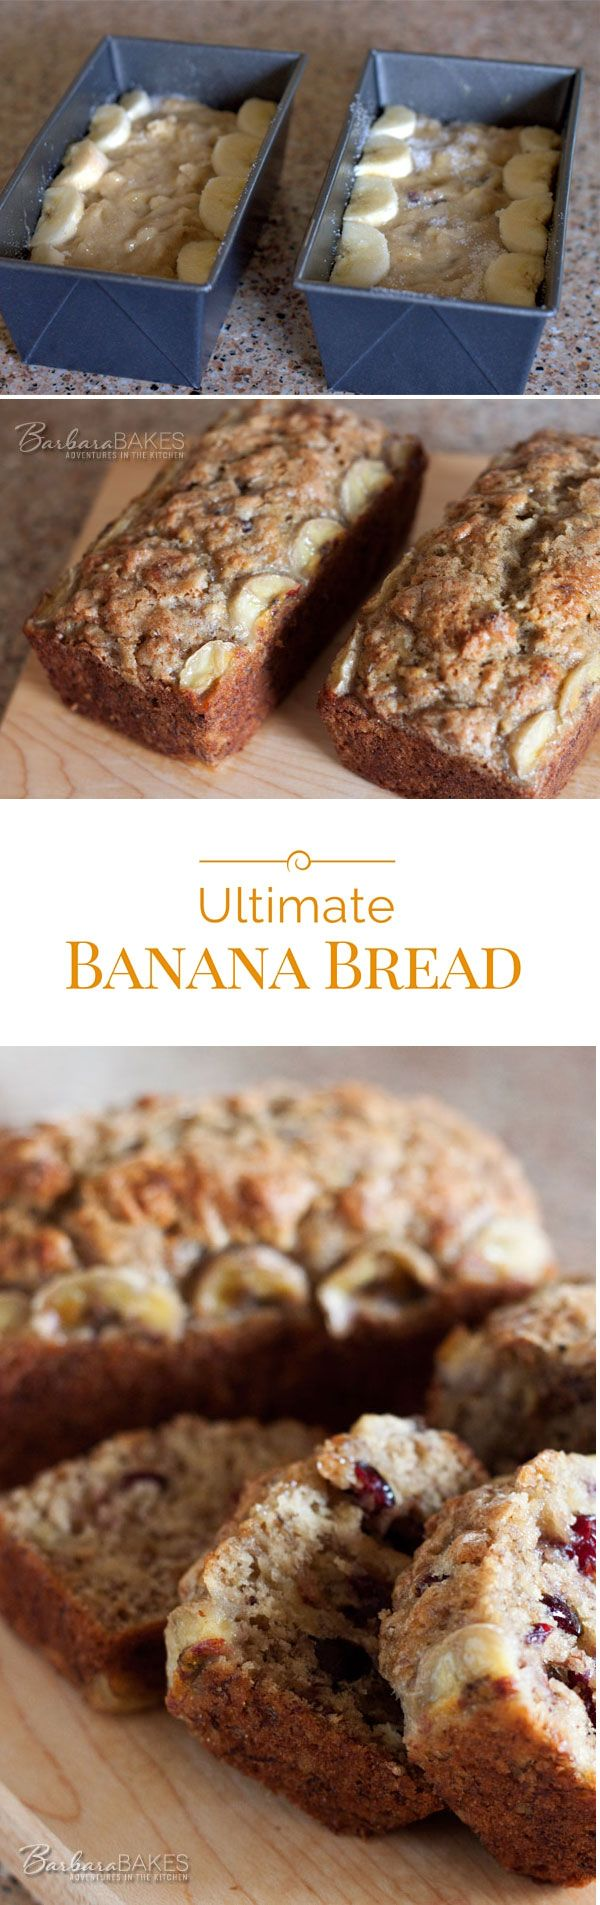 For the ultimate banana bread you want a bread loaded with great banana flavor that's moist and tender, but not overly moist or soggy.